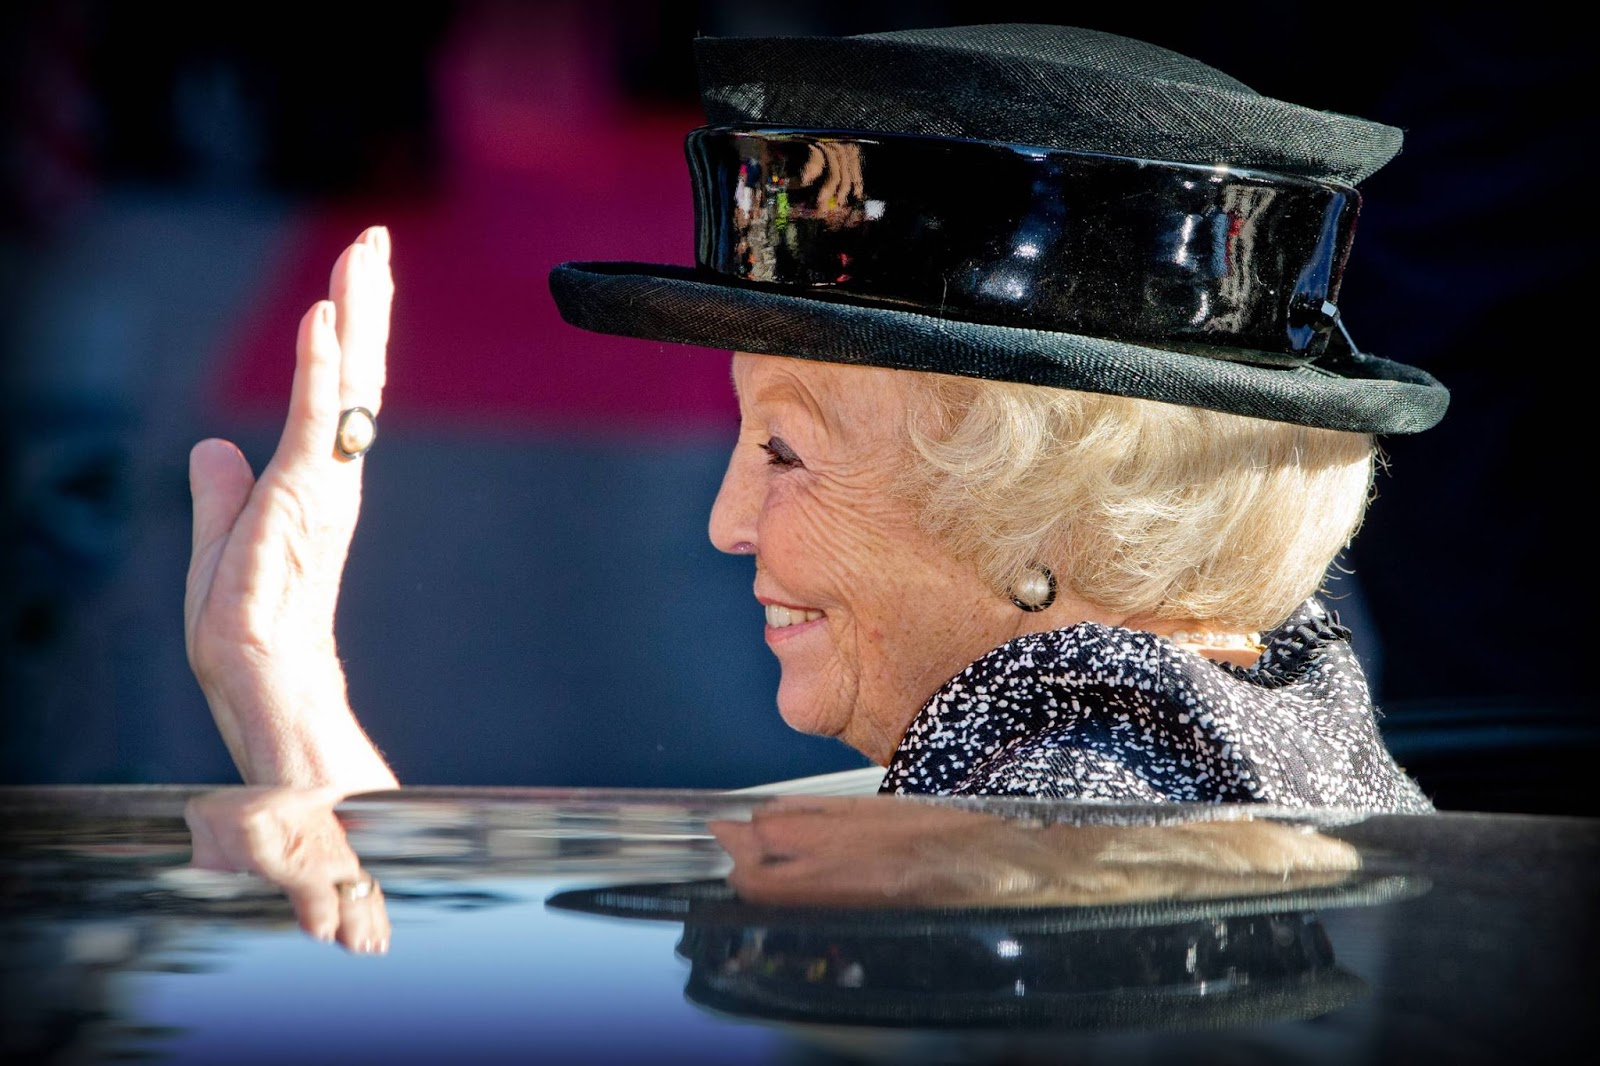 Princess Beatrix of The Netherlands opens the Majoor Bosshardt Burgh in Amsterdam